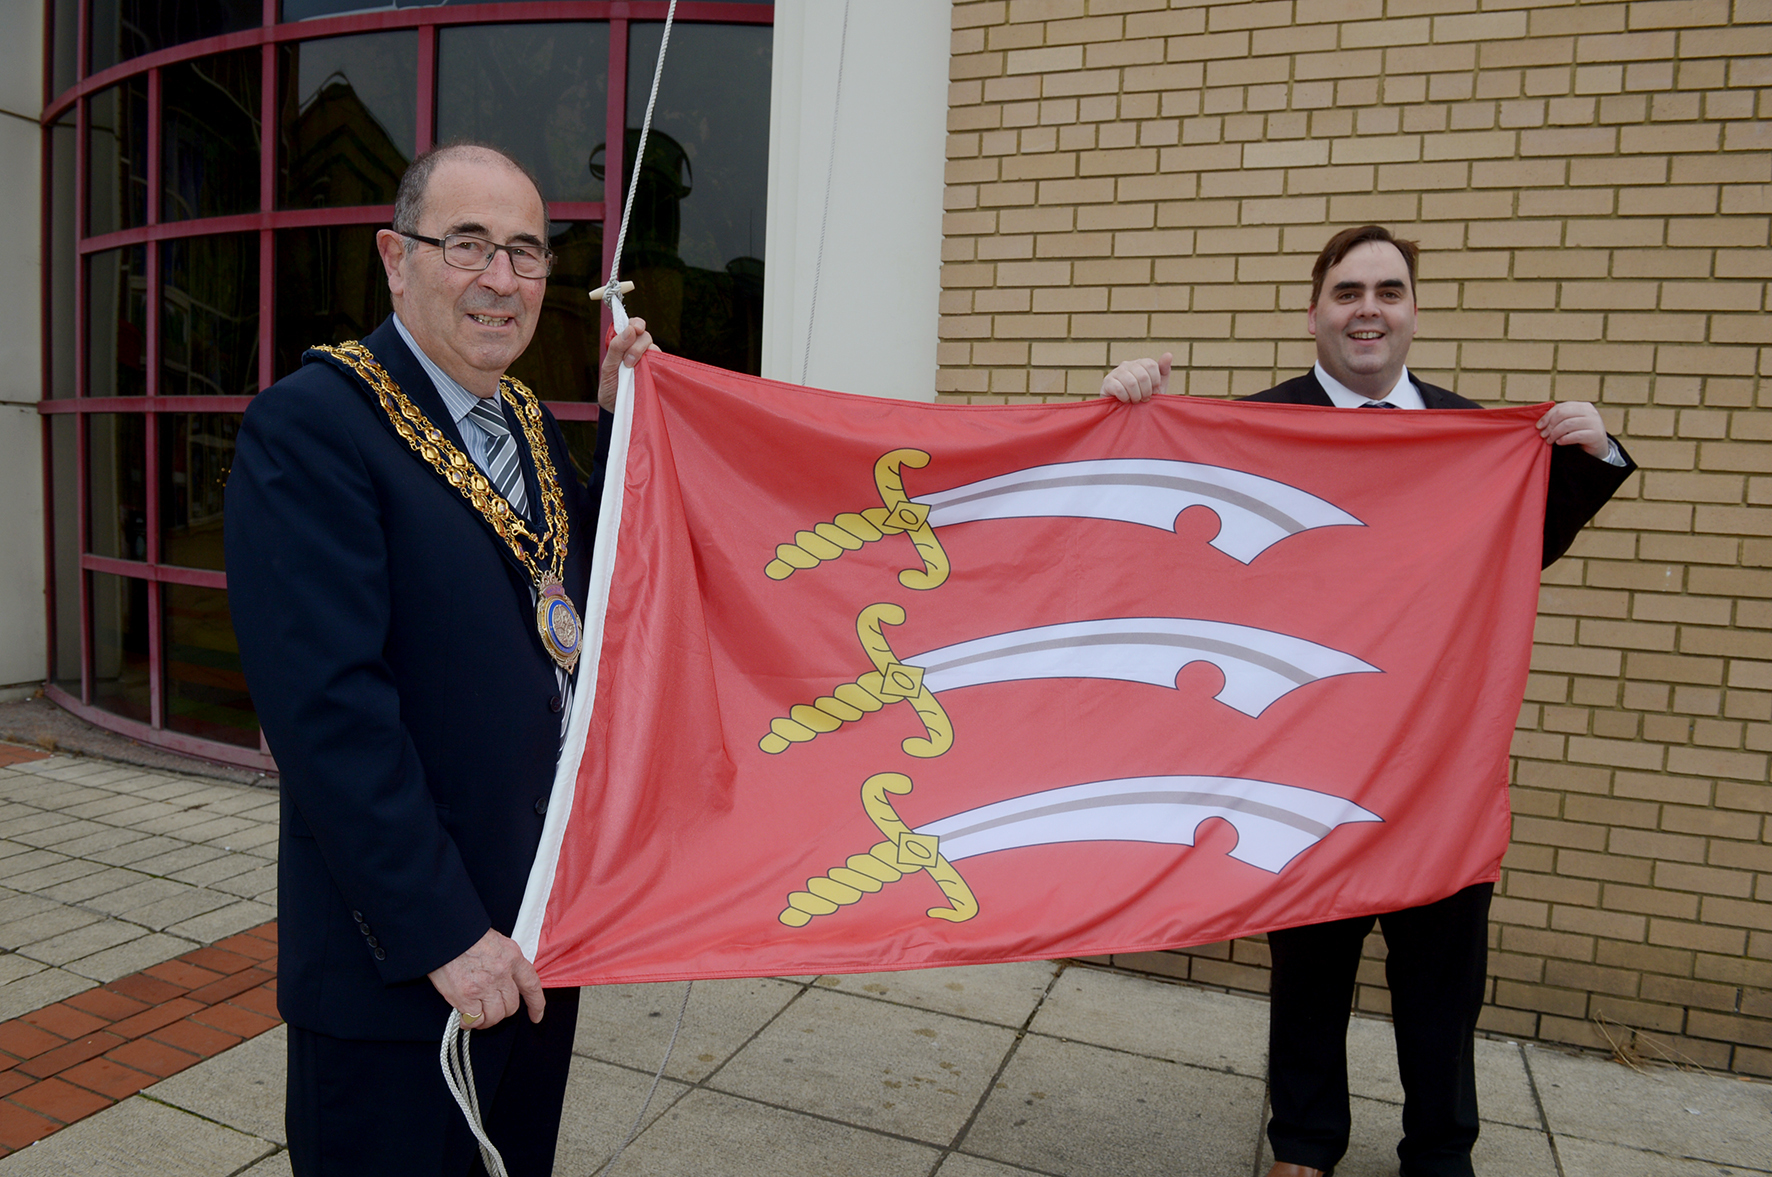 Basildon Centre, St Martin's Square, Basildon.Mayor of Basildon cllr David Harrison and cllr Kerry Smith from Basildon Council raises the county's flag to show its support for Essex Day.. ..